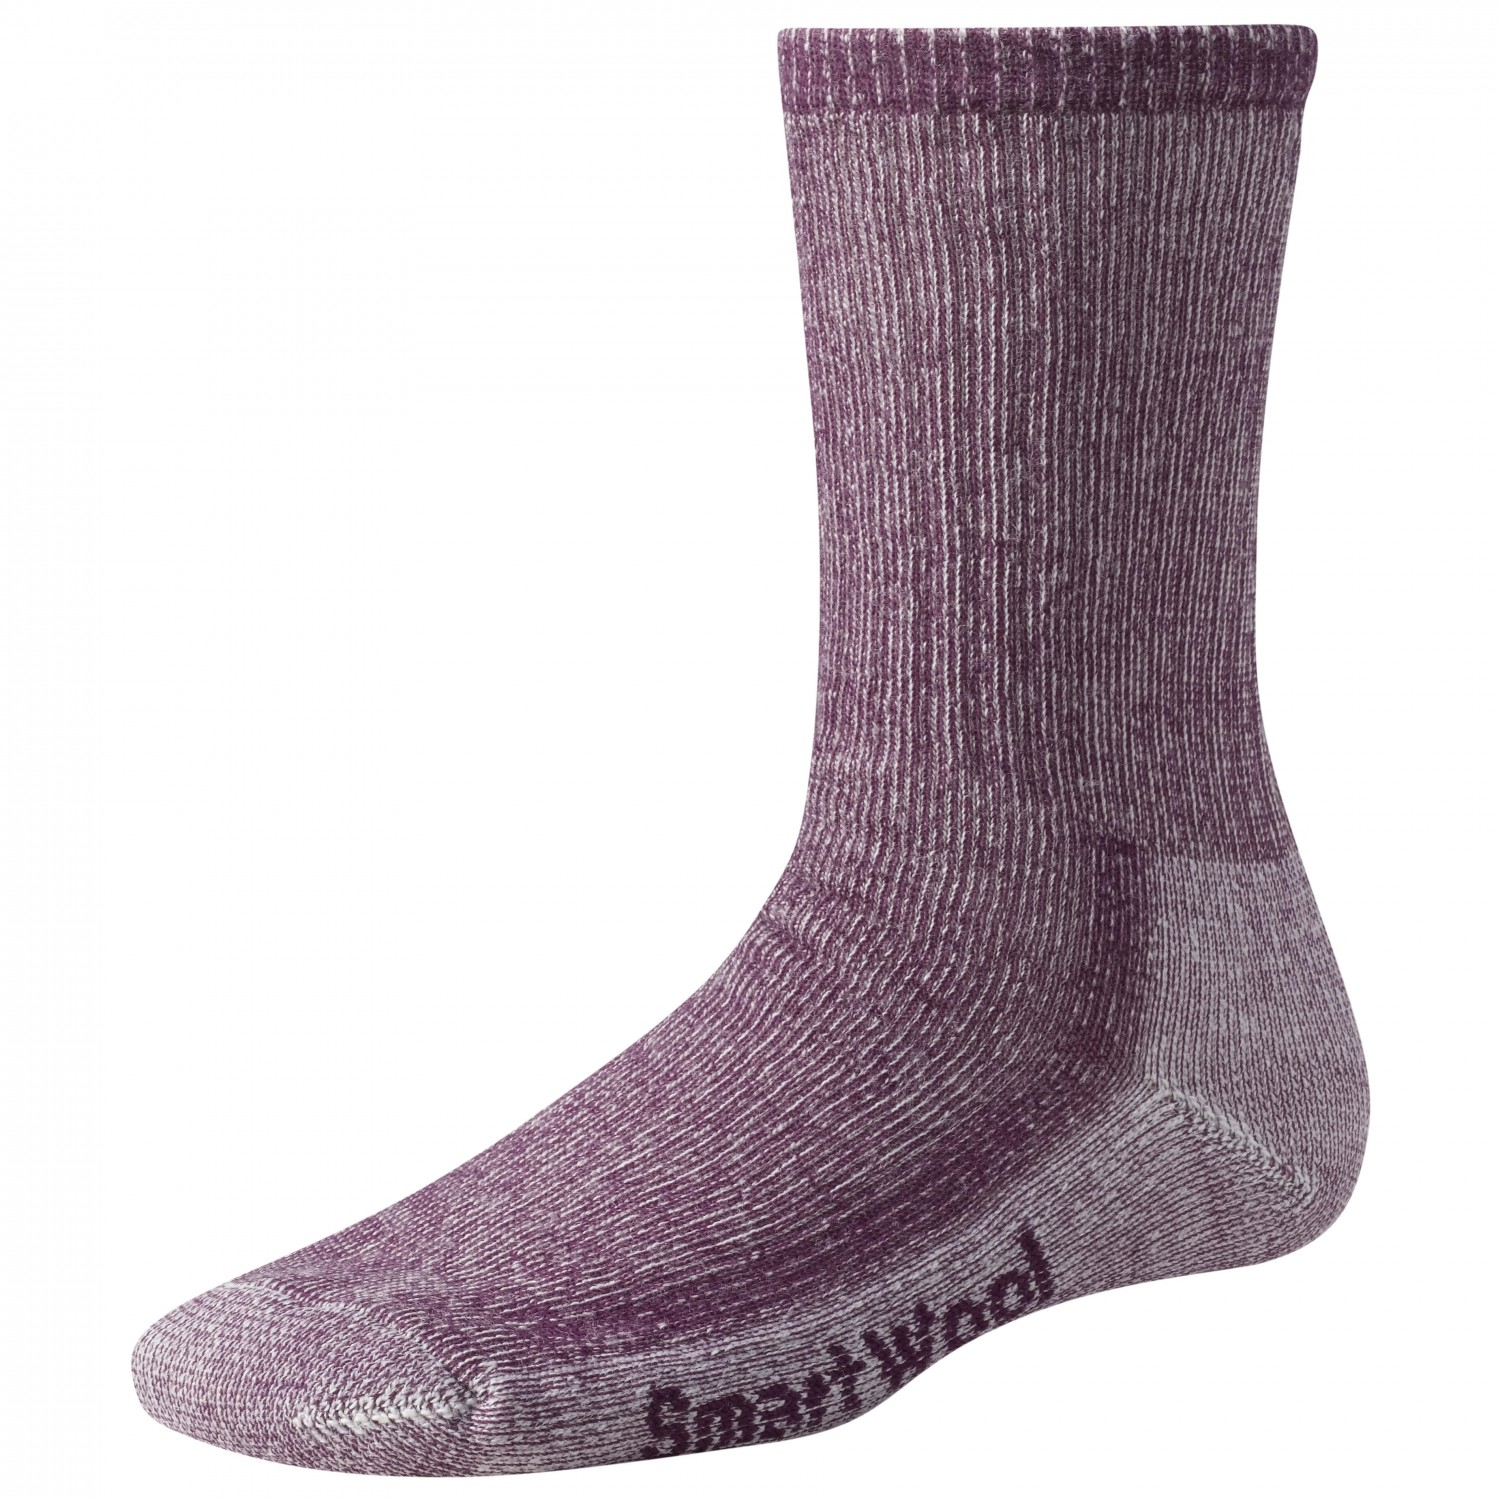 Smartwool - Women's Hike Medium Crew - Trekkingsocken Dark Cassis